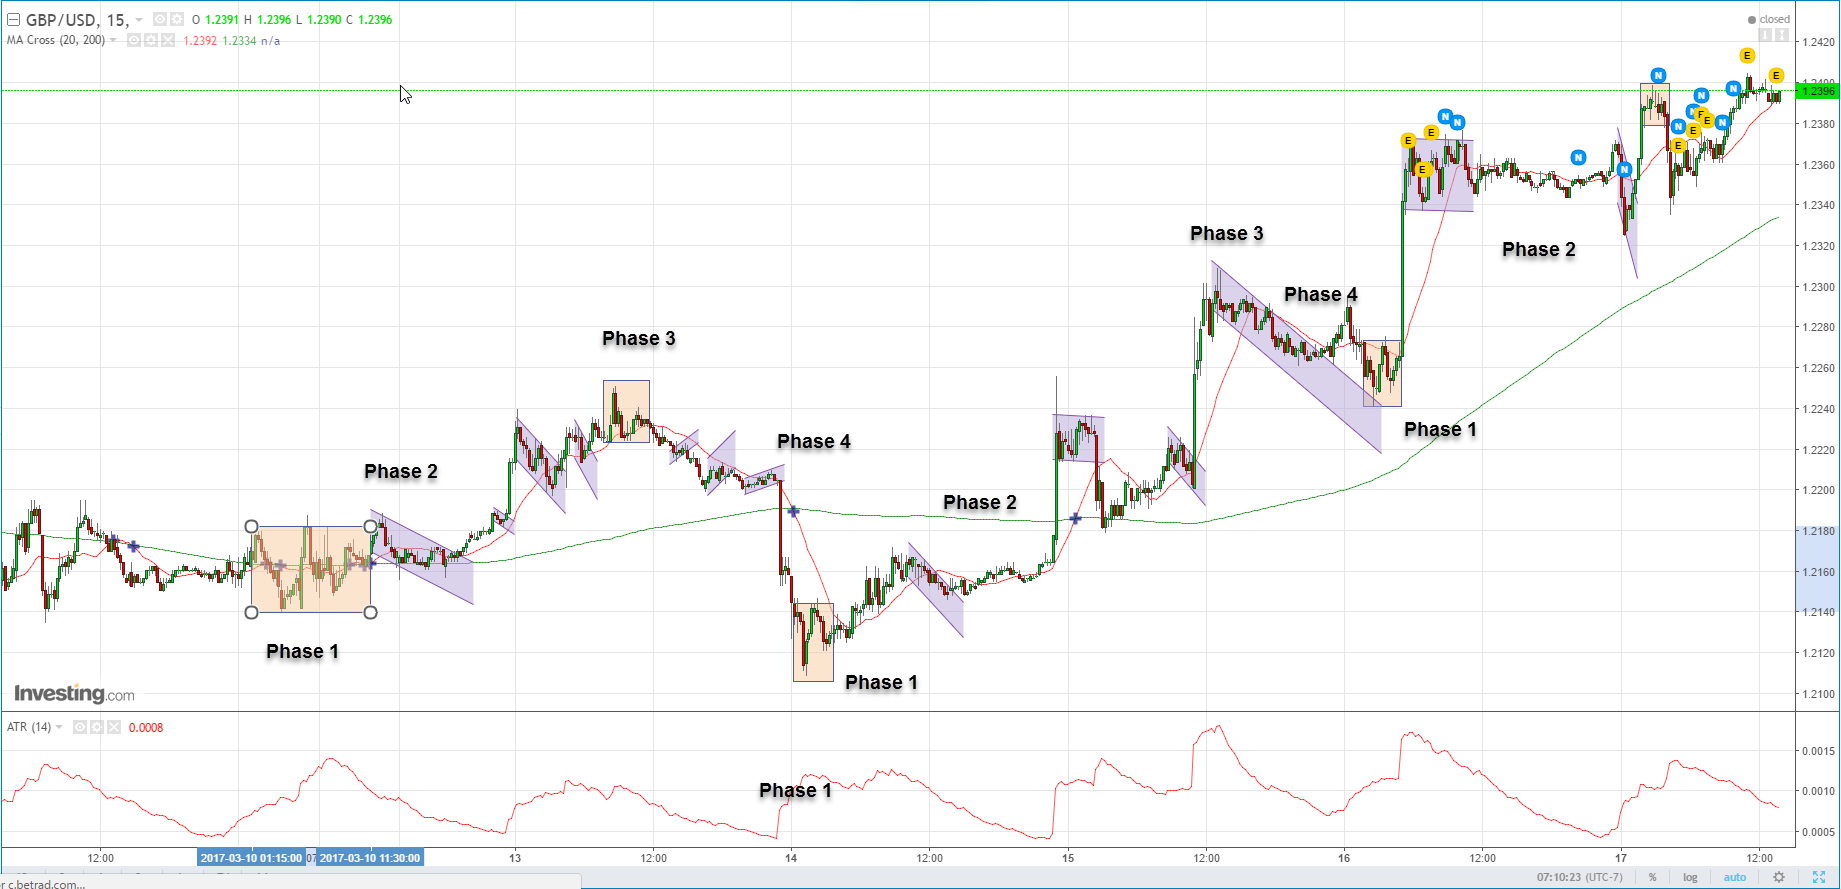 Forex trading news and analysis